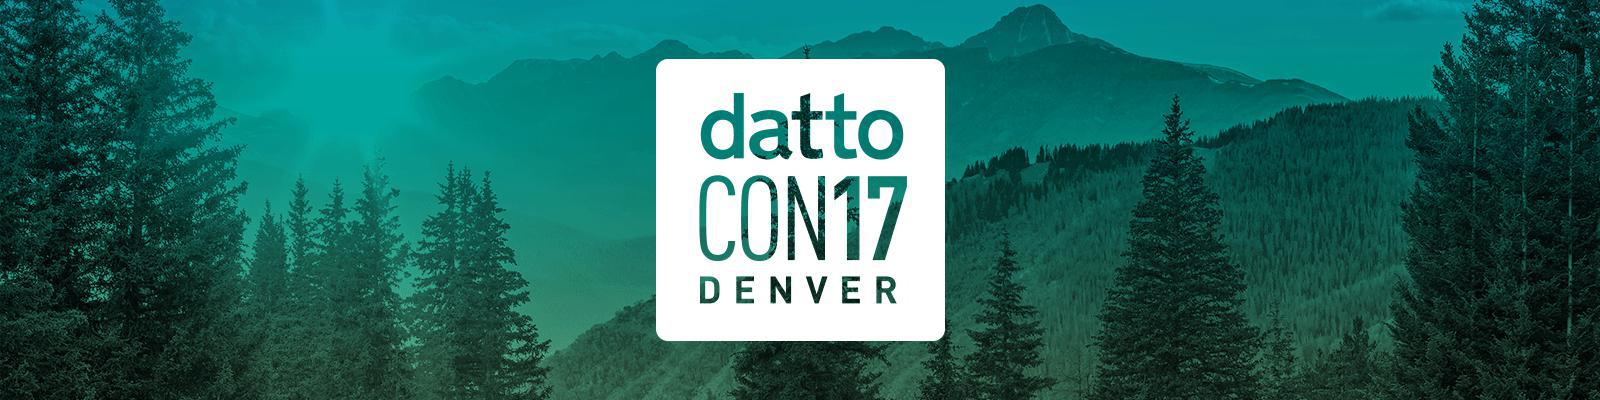 Live Updates from #DattoCon17